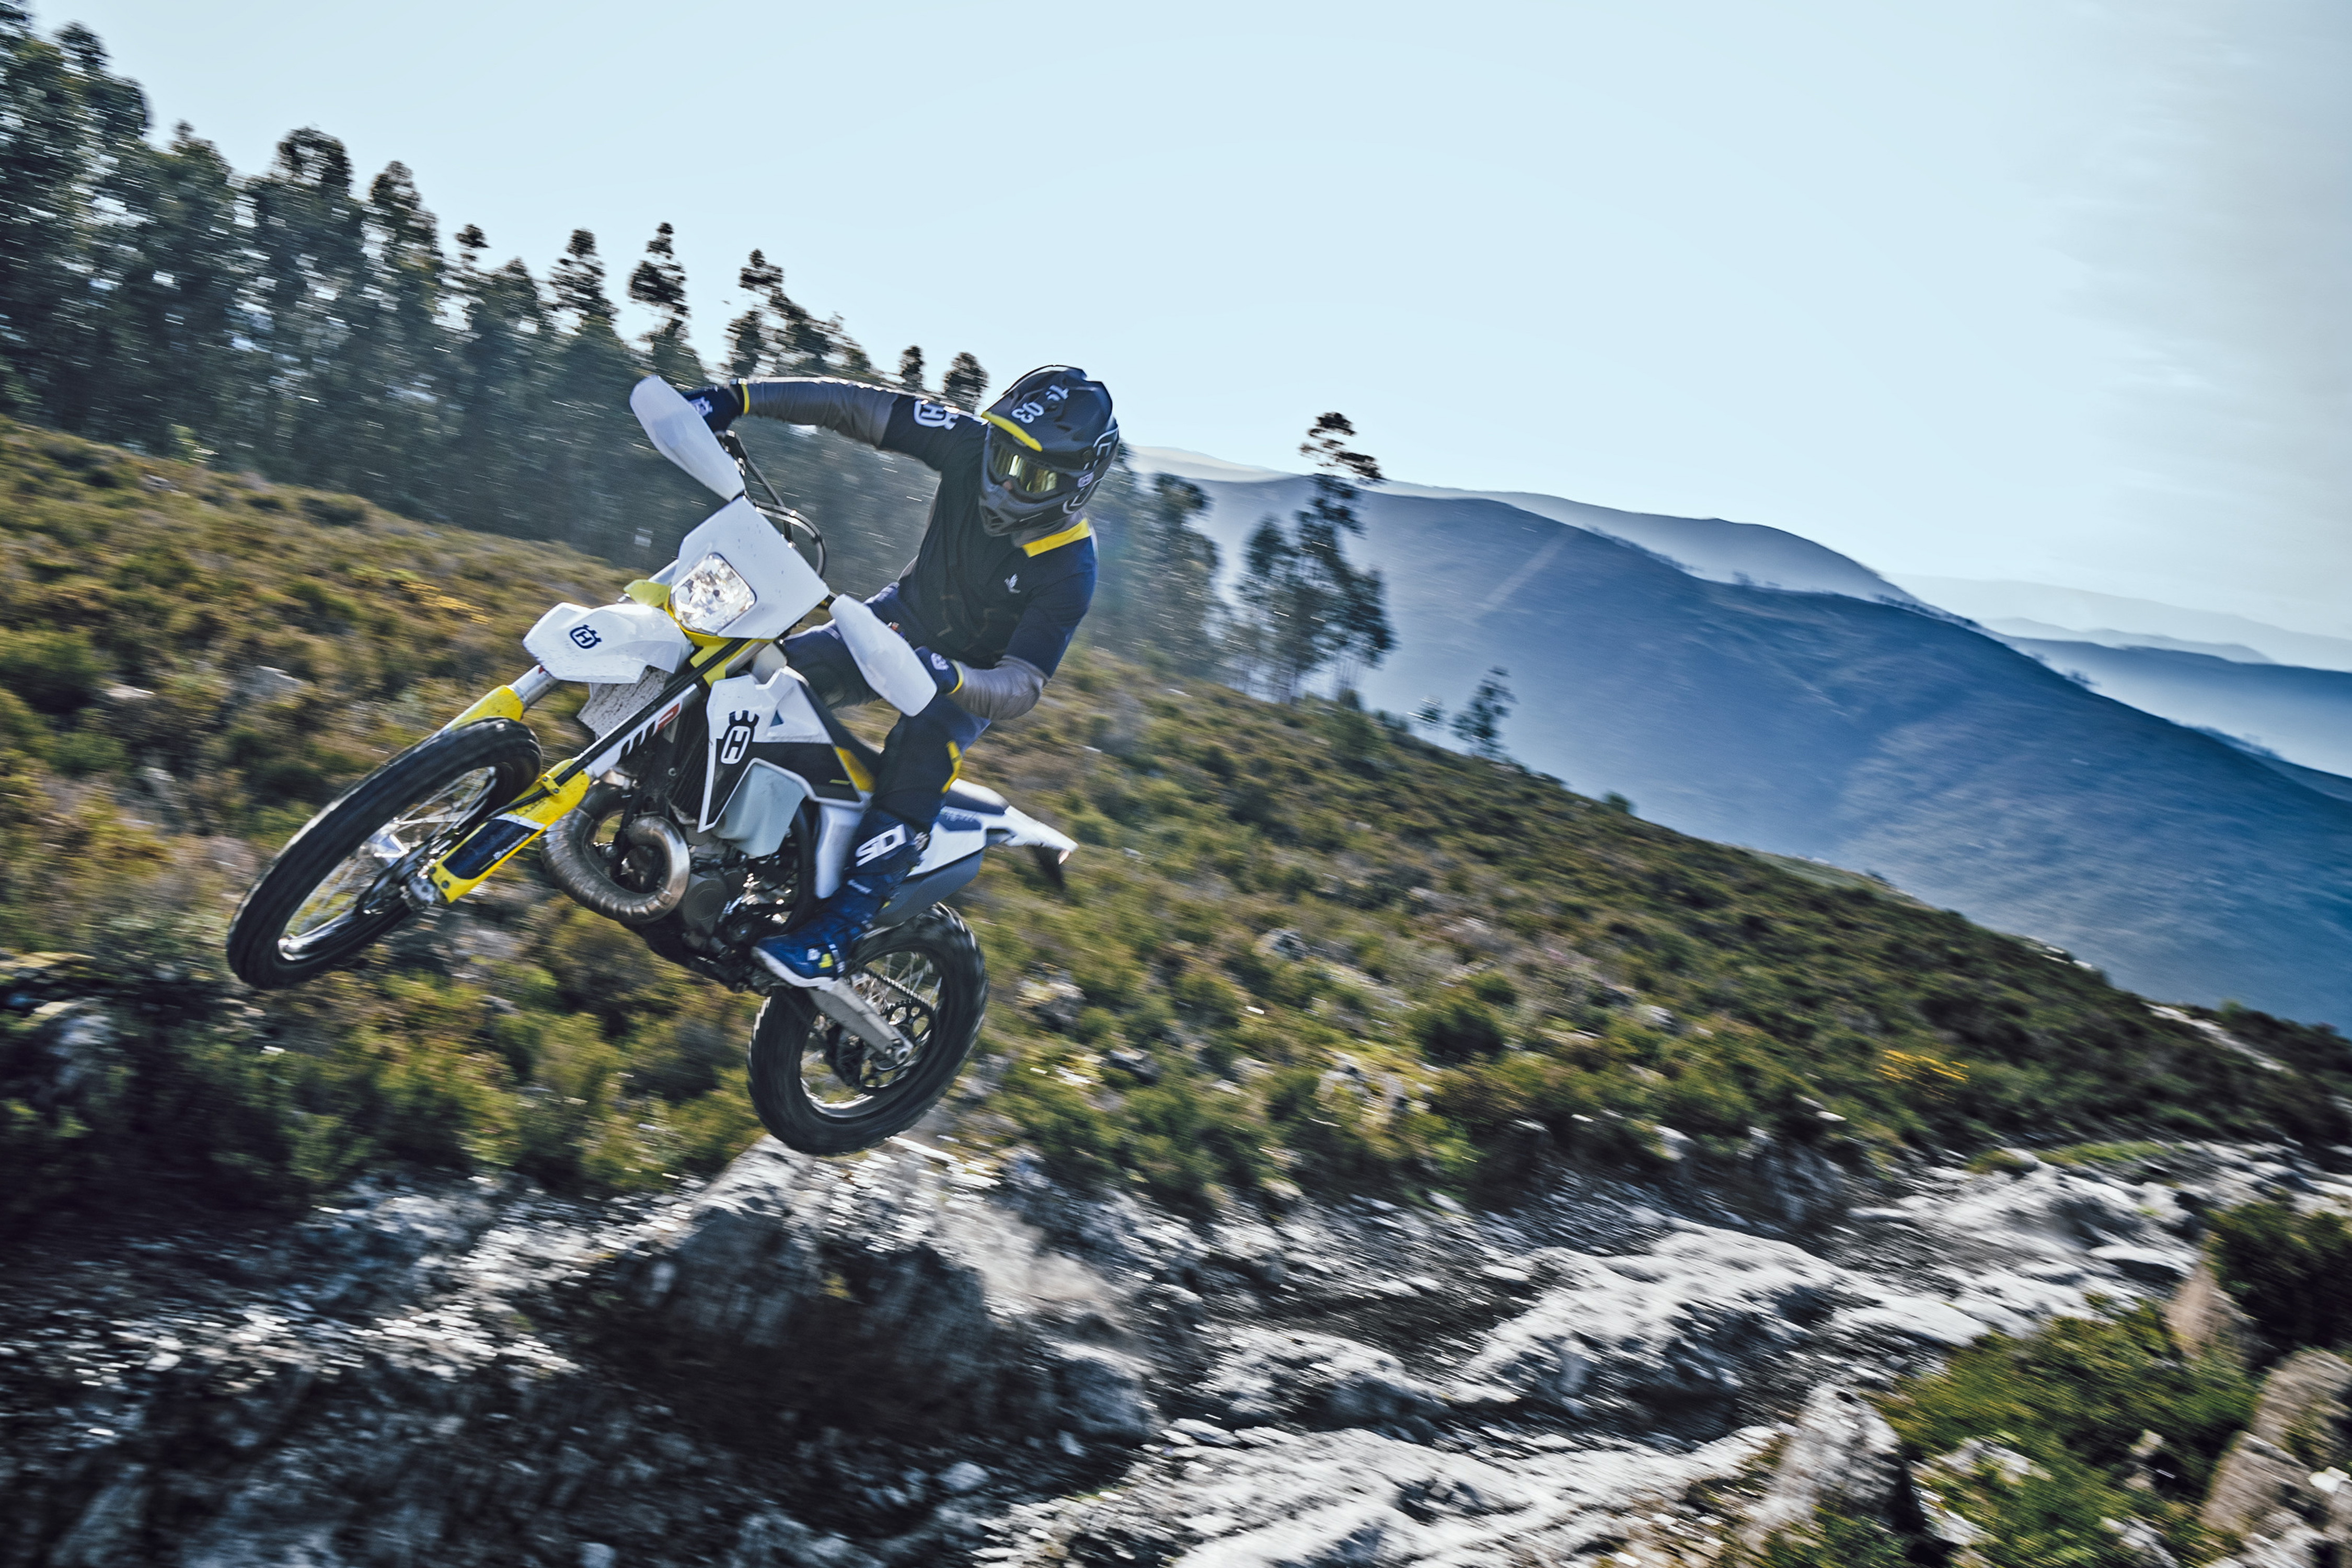 Best Enduro Motorcycle 2021 Enduro